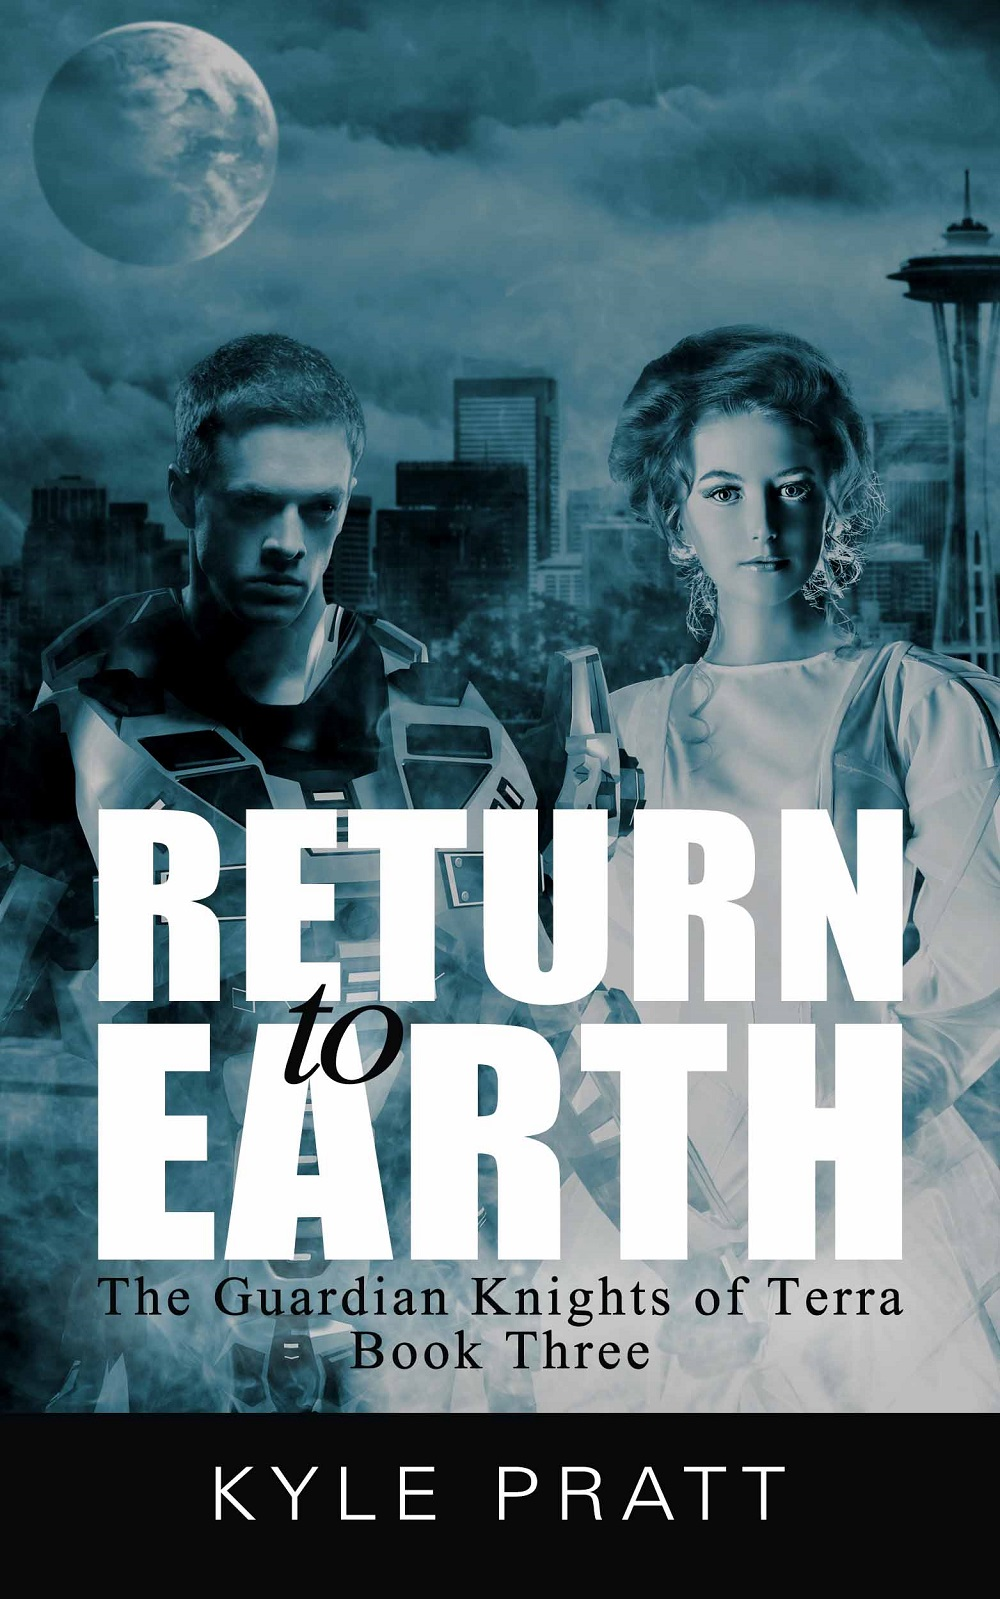 Return to Earth    Book three in the Guardian Knights of Terra series.   As Rachel, Lucas, Katherine, and Magnus flee to Earth, with thousands of desperate seekers, the forces loyal to the new king, Draven, hunt them. The rightful king, Magnus, might be able to save them all with a simple command, but he lingers in a coma near death.  Rachel knows their enemies are closing in for the kill, but what can she do? Even if Rachel and her friends reach Earth, and prove the Mage have lied, they may all die before the people of Europa hear the truth.